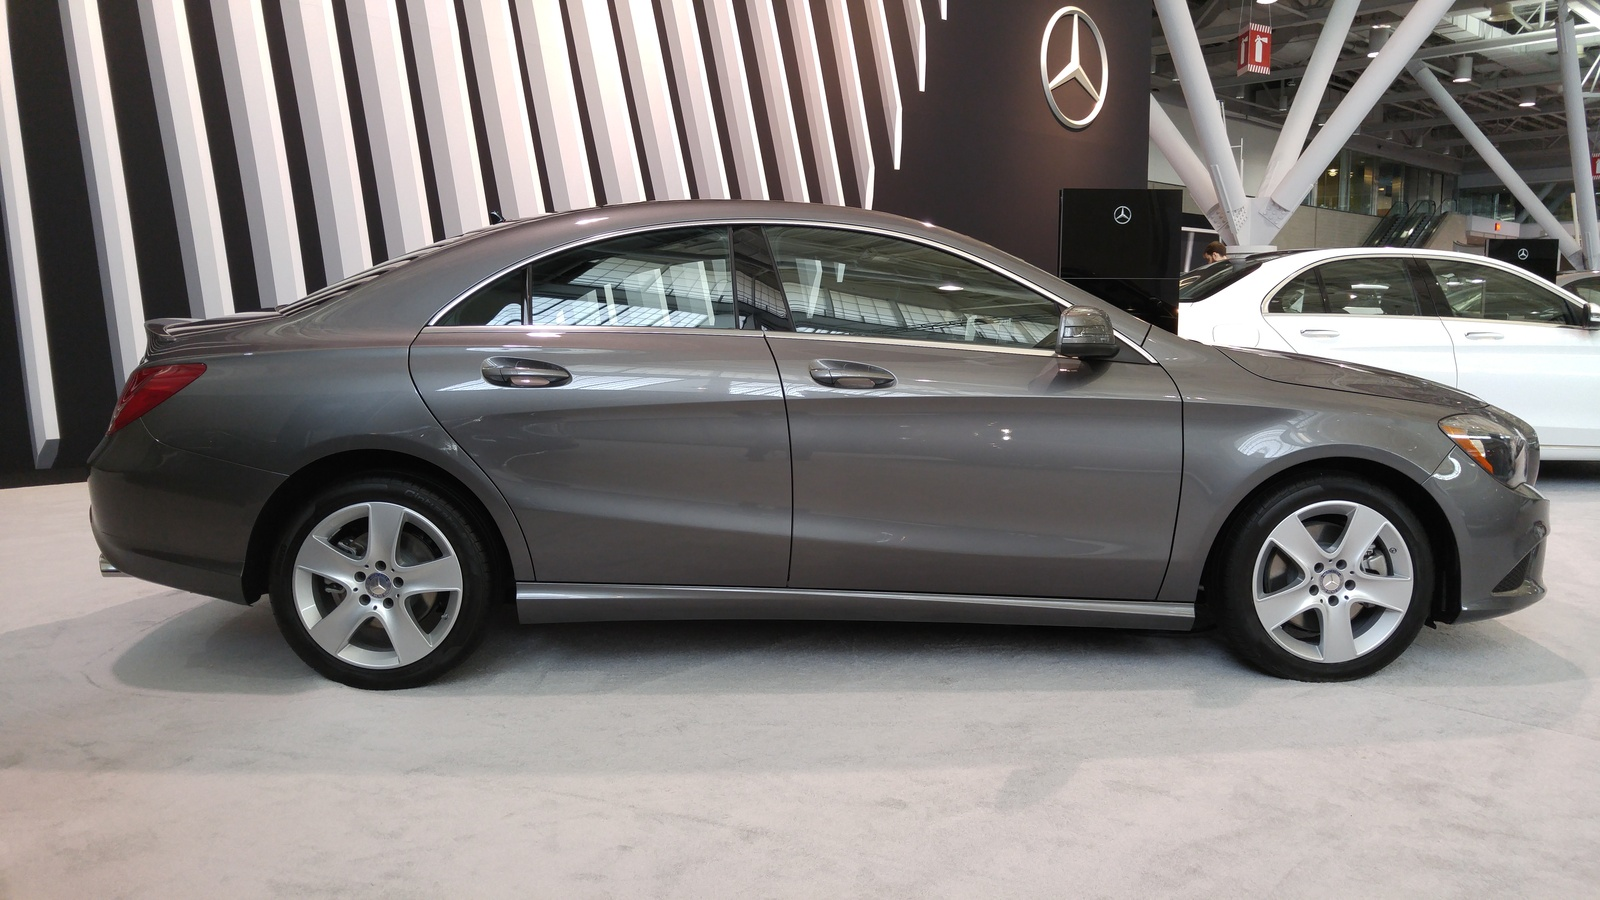 New 2015 2016 mercedes benz cla class for sale houston for Mercedes benz for sale in houston